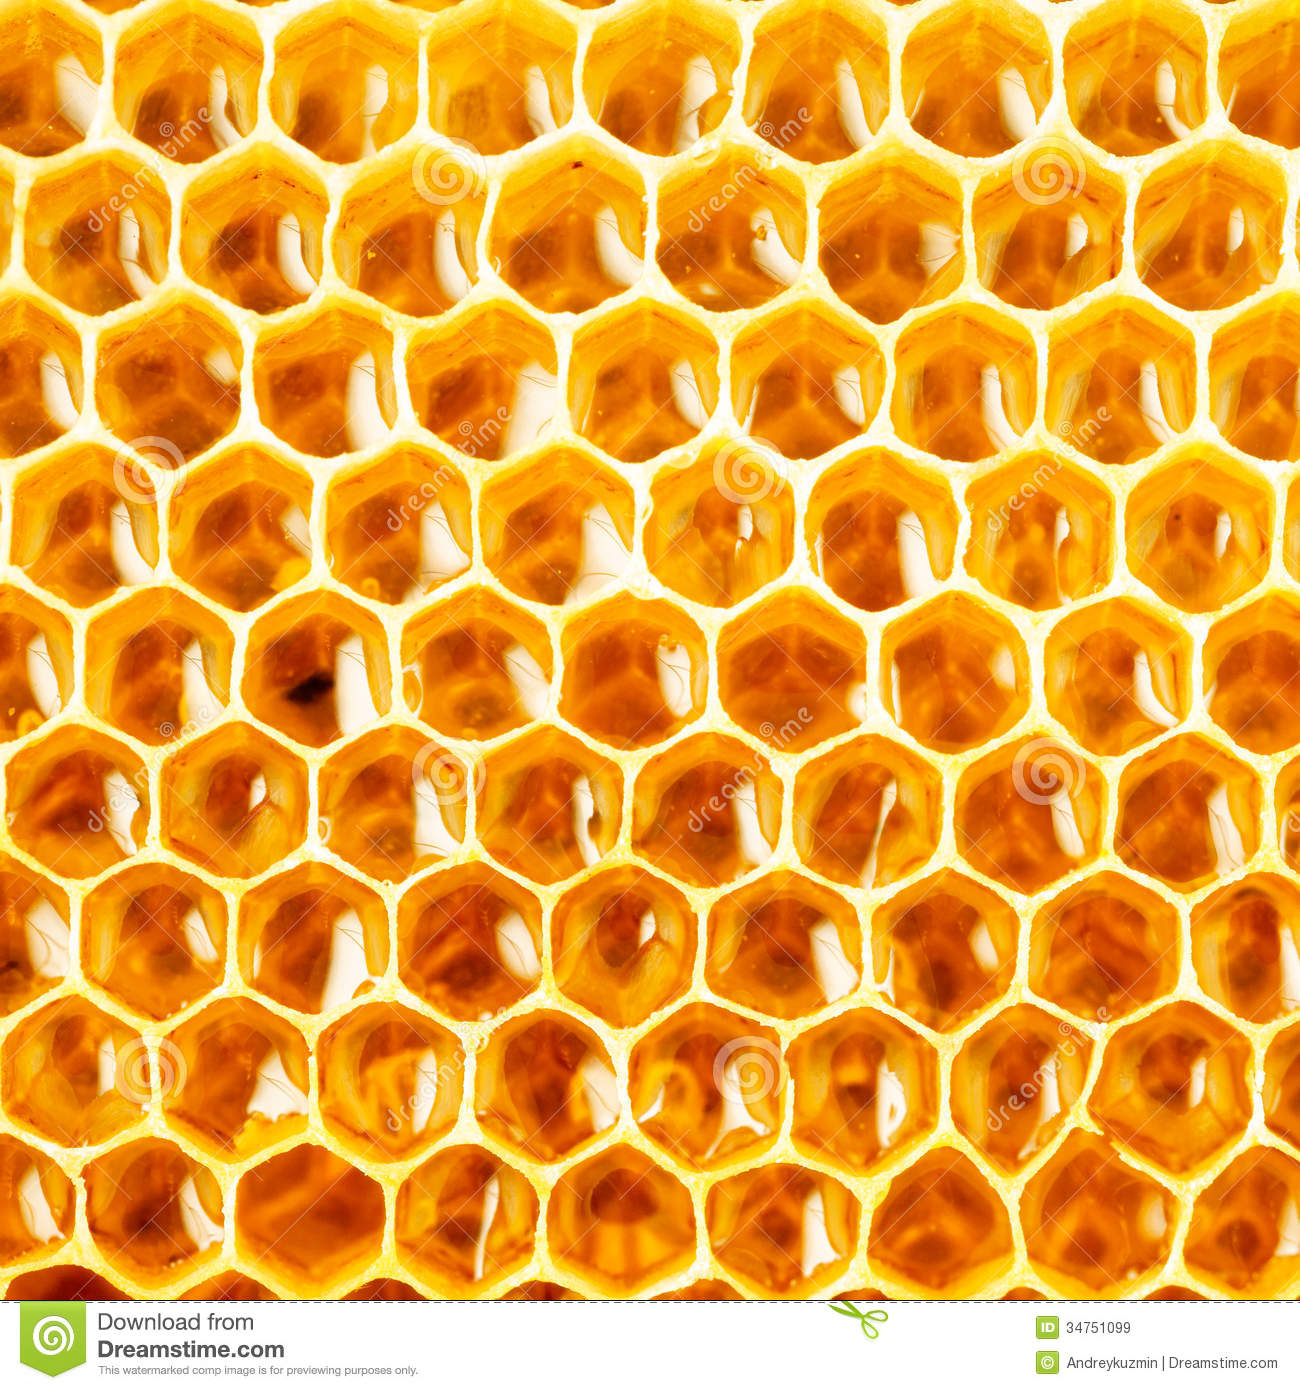 Honey In Honeycomb Closeup Royalty Free Stock Images - Image: 34751099